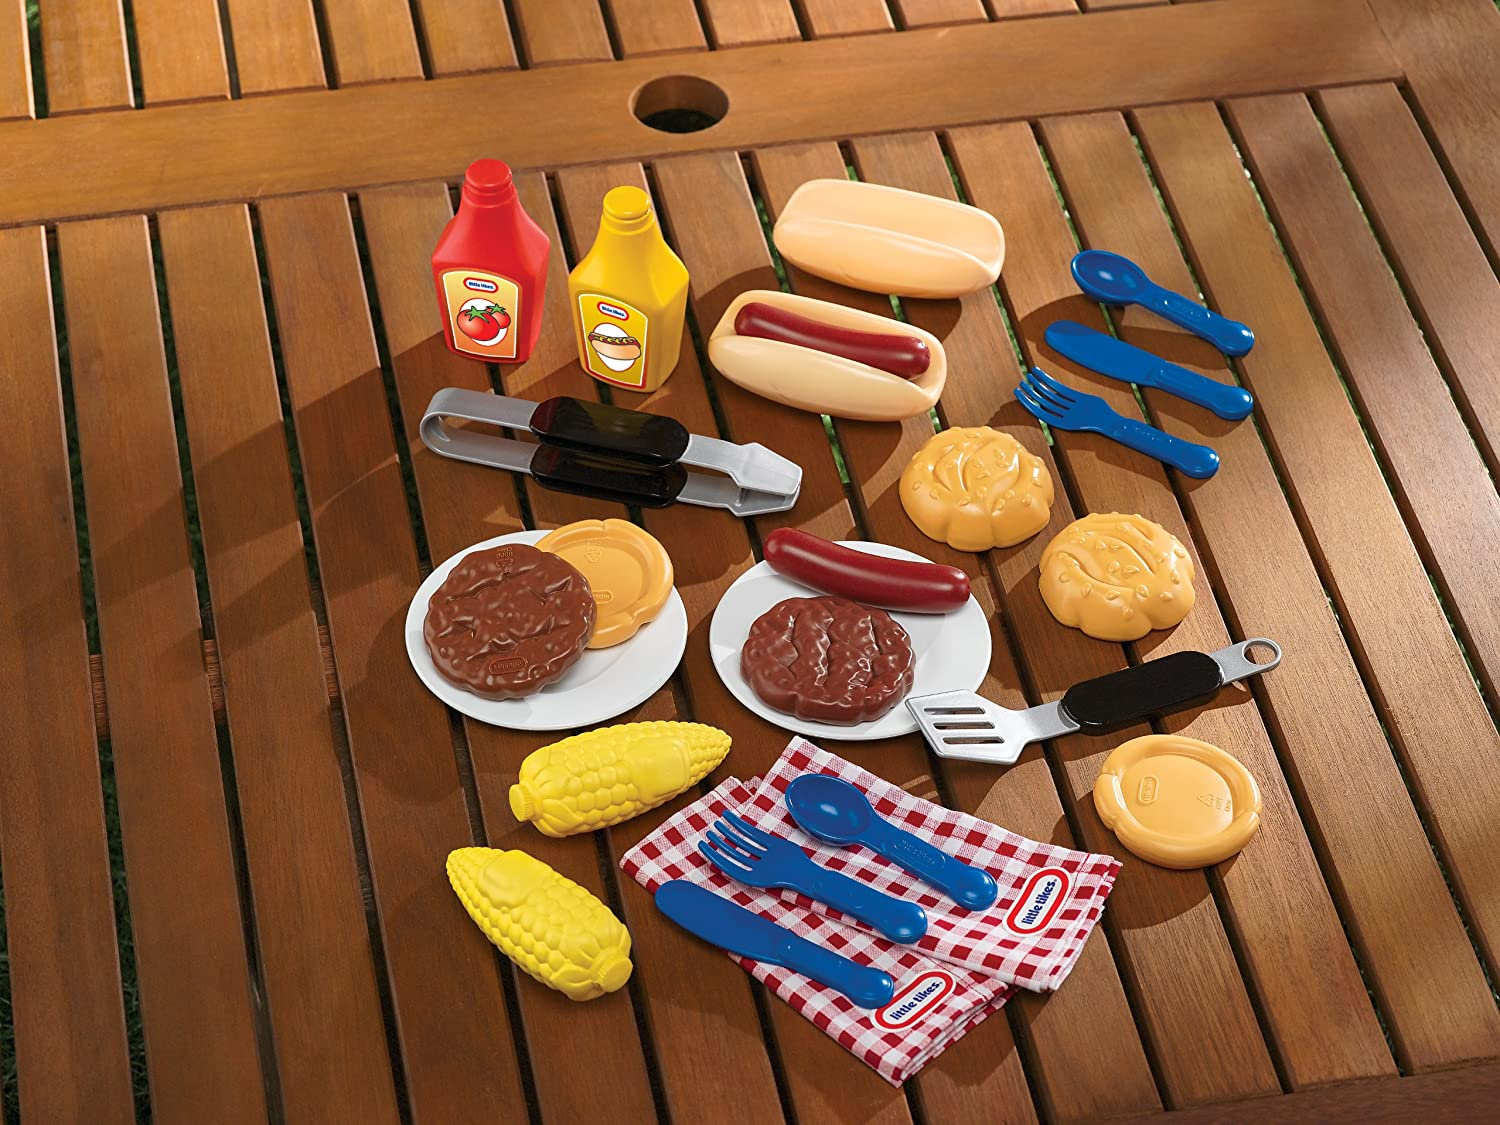 Backyard Barbeque Grillin' Goodies